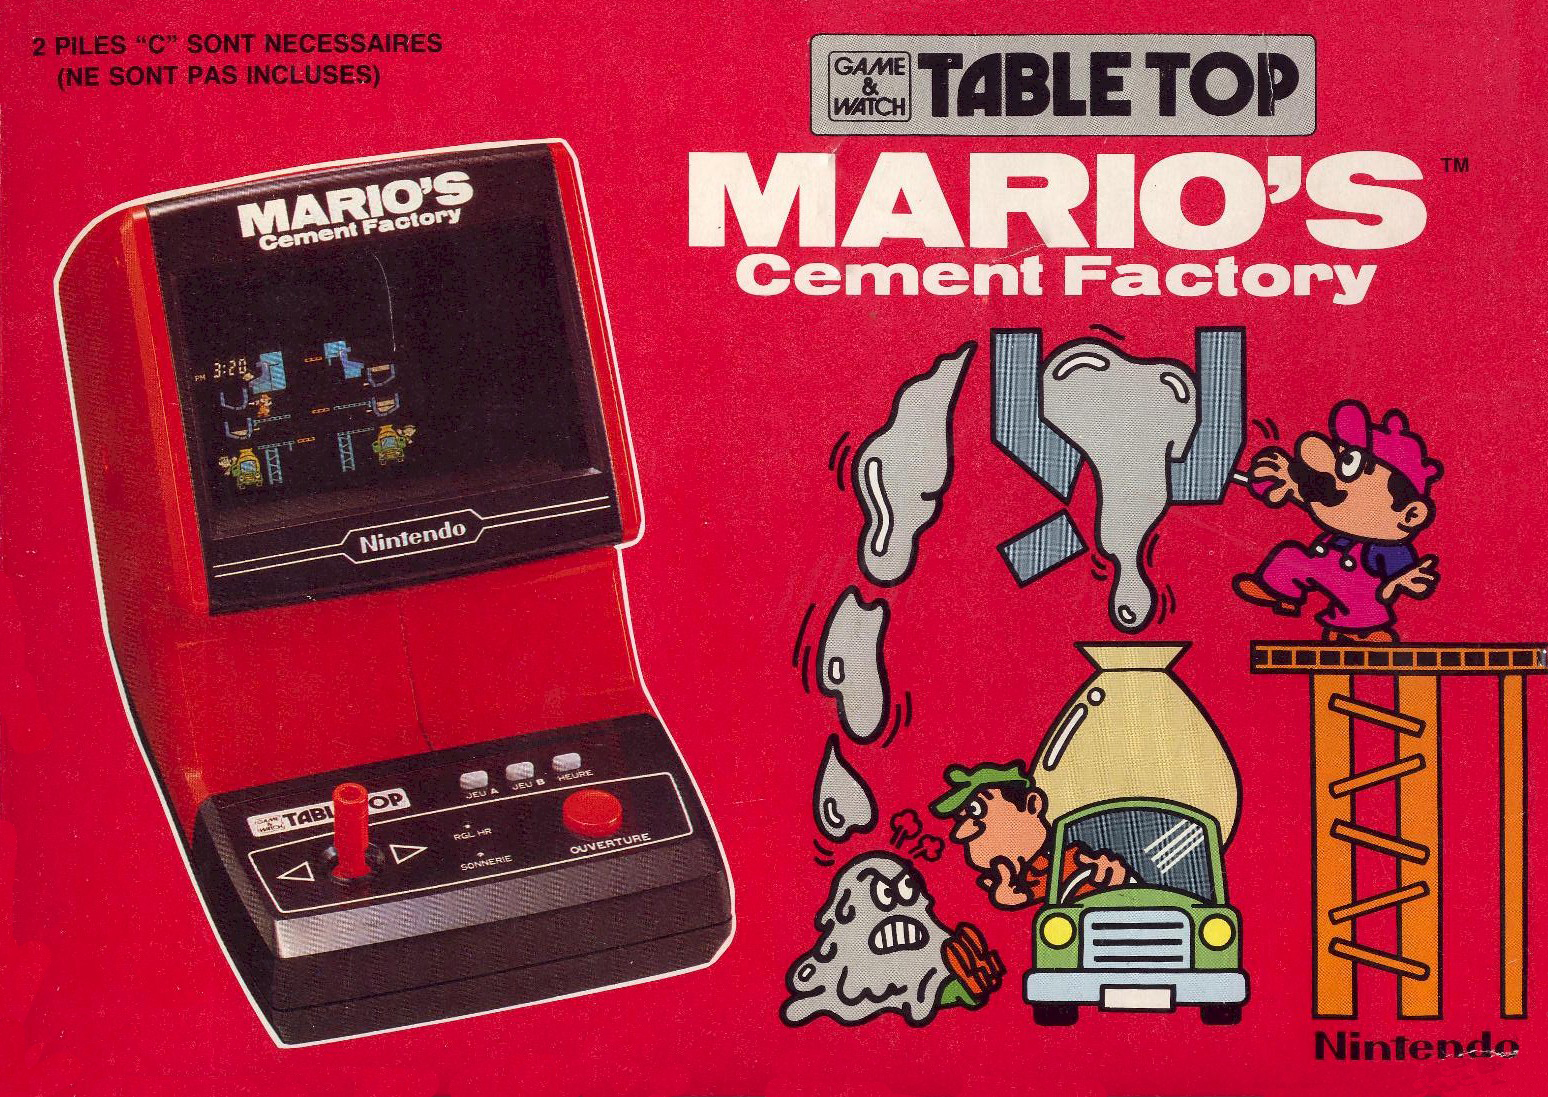 Mario's Cement Factory Nintendo Tabletop CM-72 Game&Watch